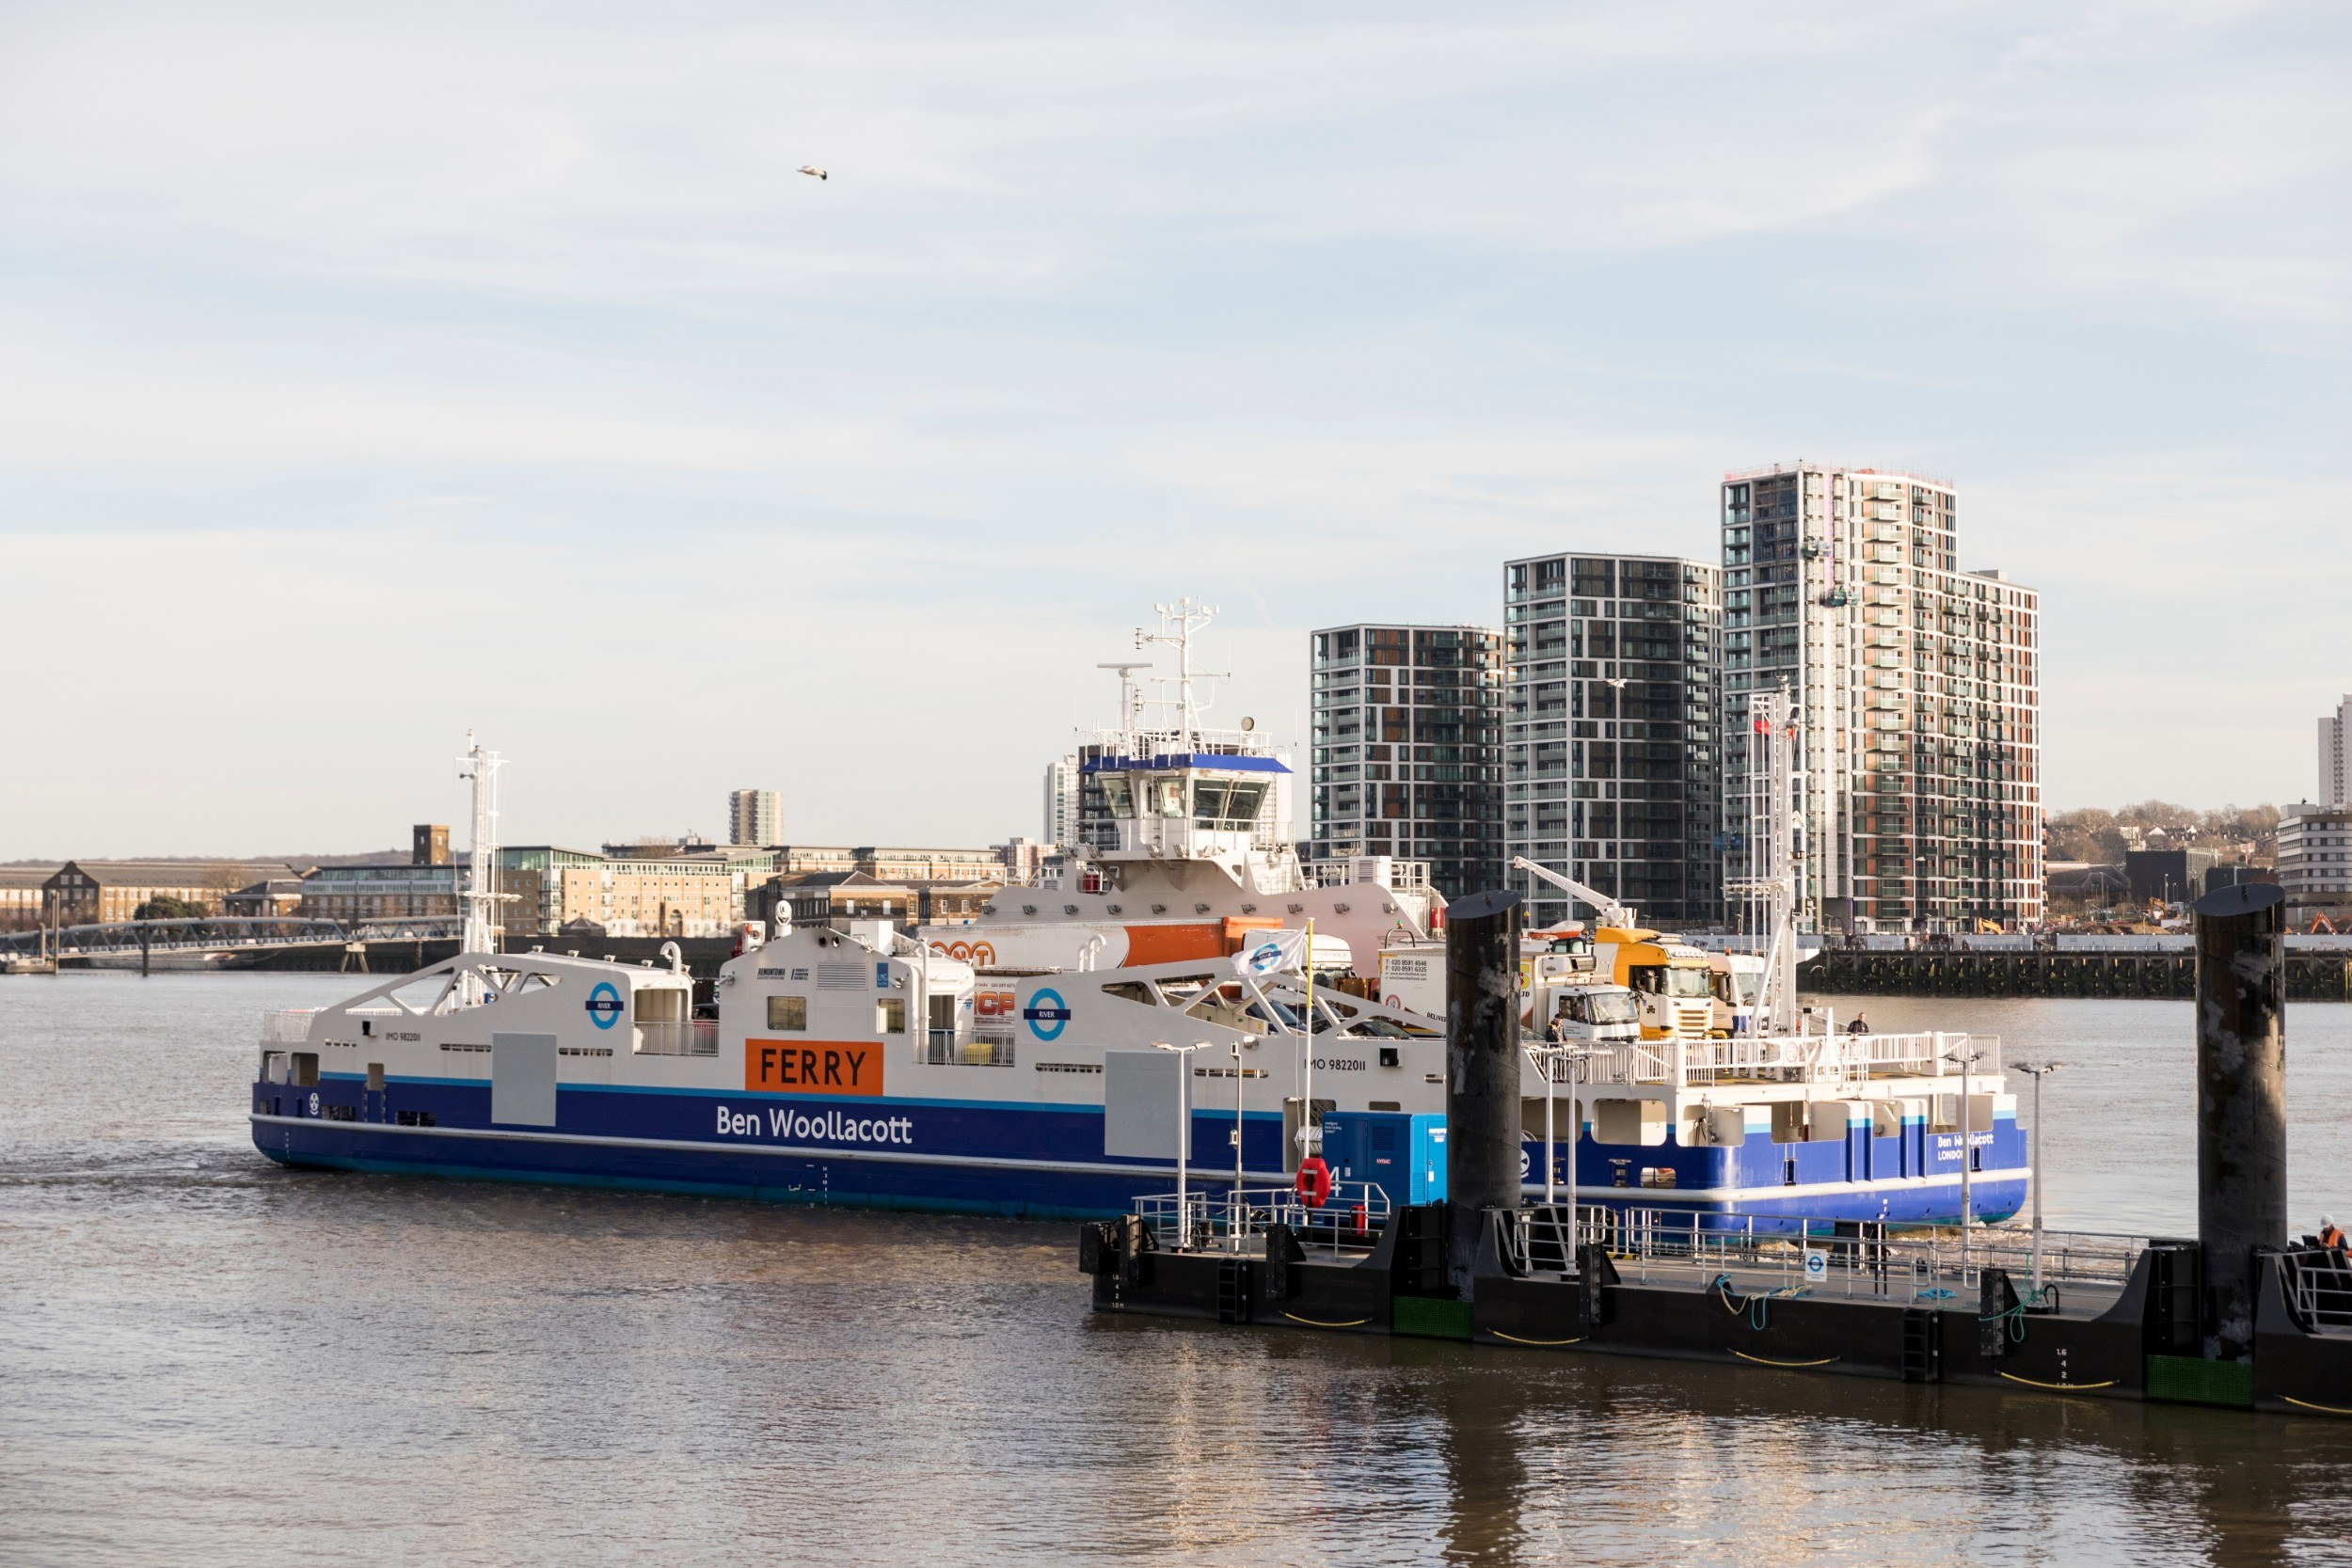 The new Woolwich Ferry model arriving at a dock